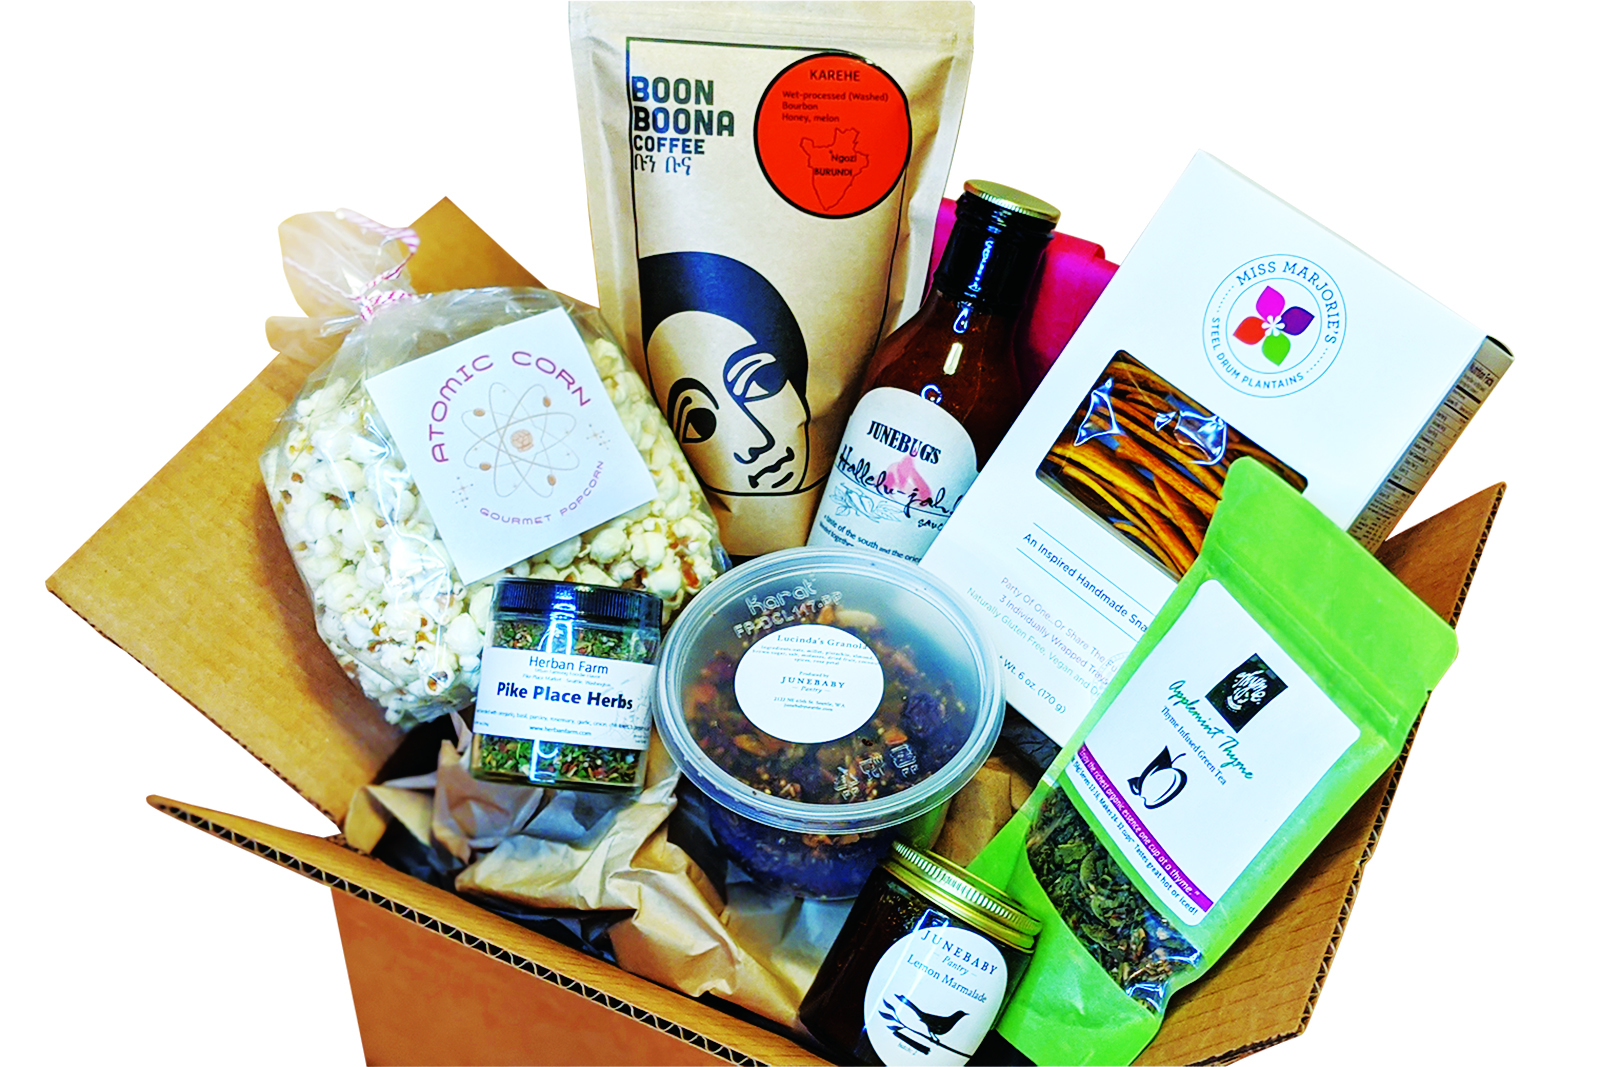 The Seattle Solidarity Box